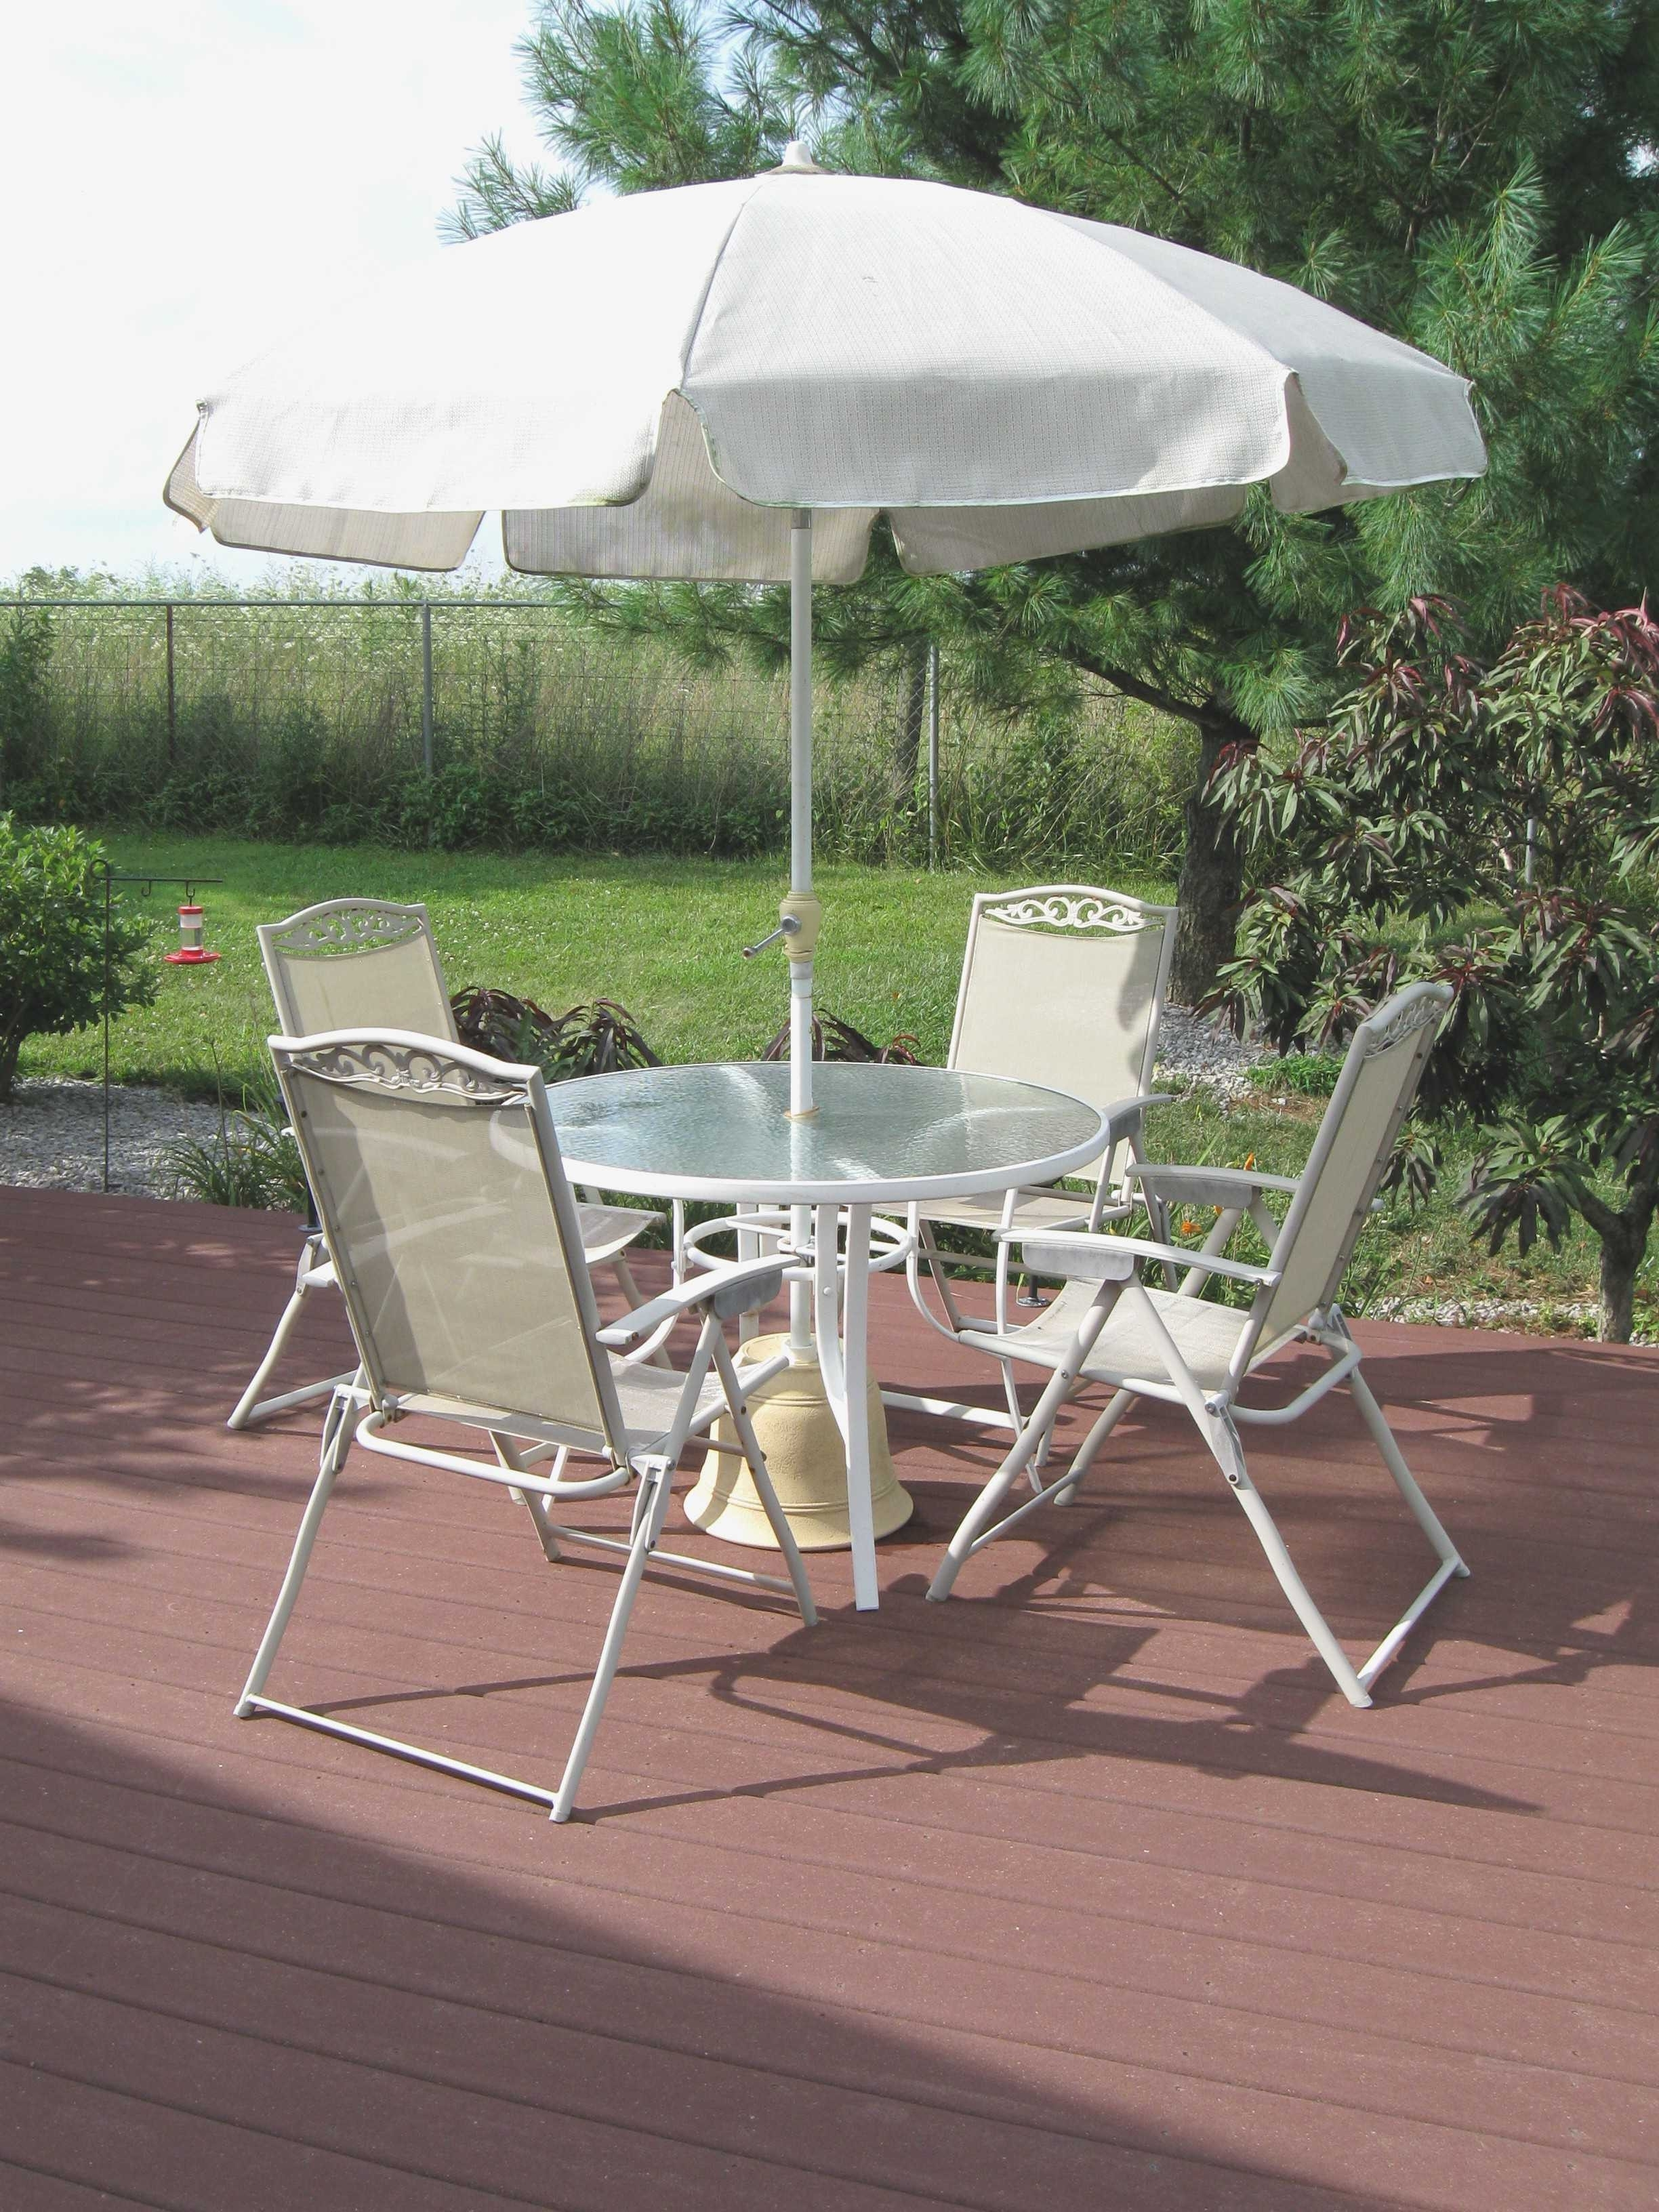 Patio Umbrella Side Table New Coffee Tables Small Outdoor Coffee Within Well Known Patio Umbrella Side Tables (View 6 of 20)